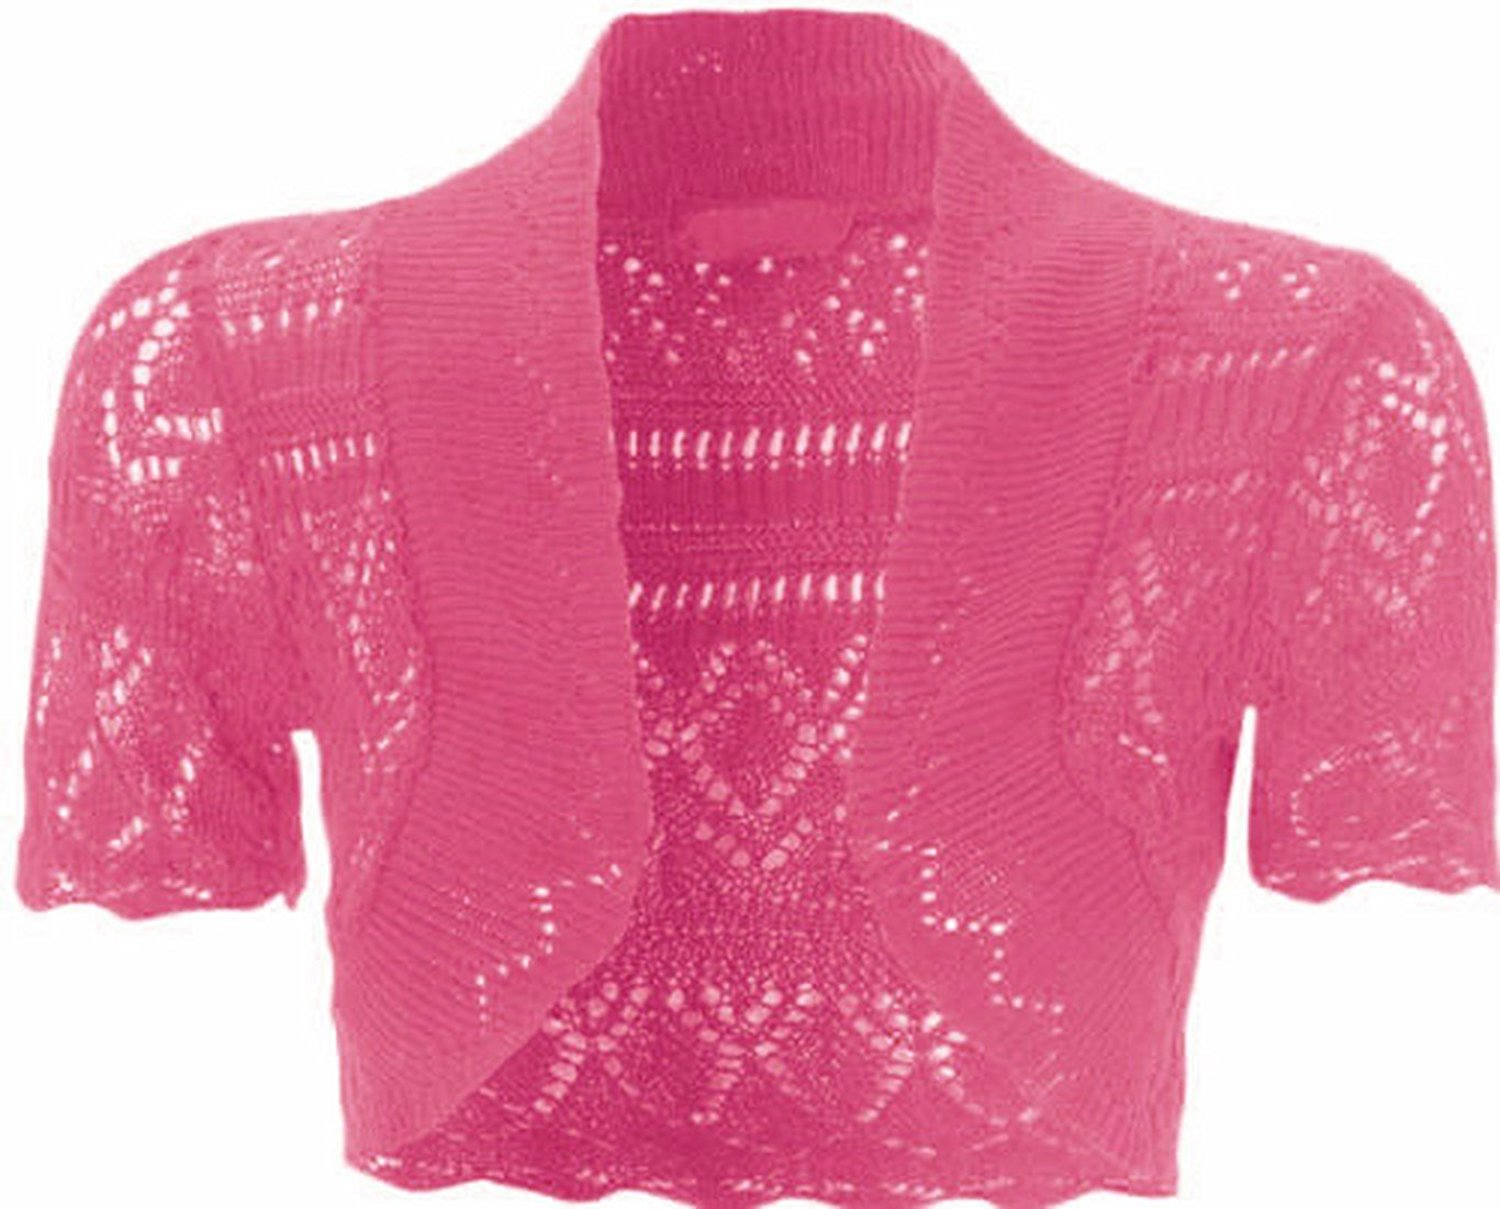 798a9ec8eee0 Get Quotations · Womens Knitted Bolero Shrug Short Sleeve Crochet Shrug  (Cerise)